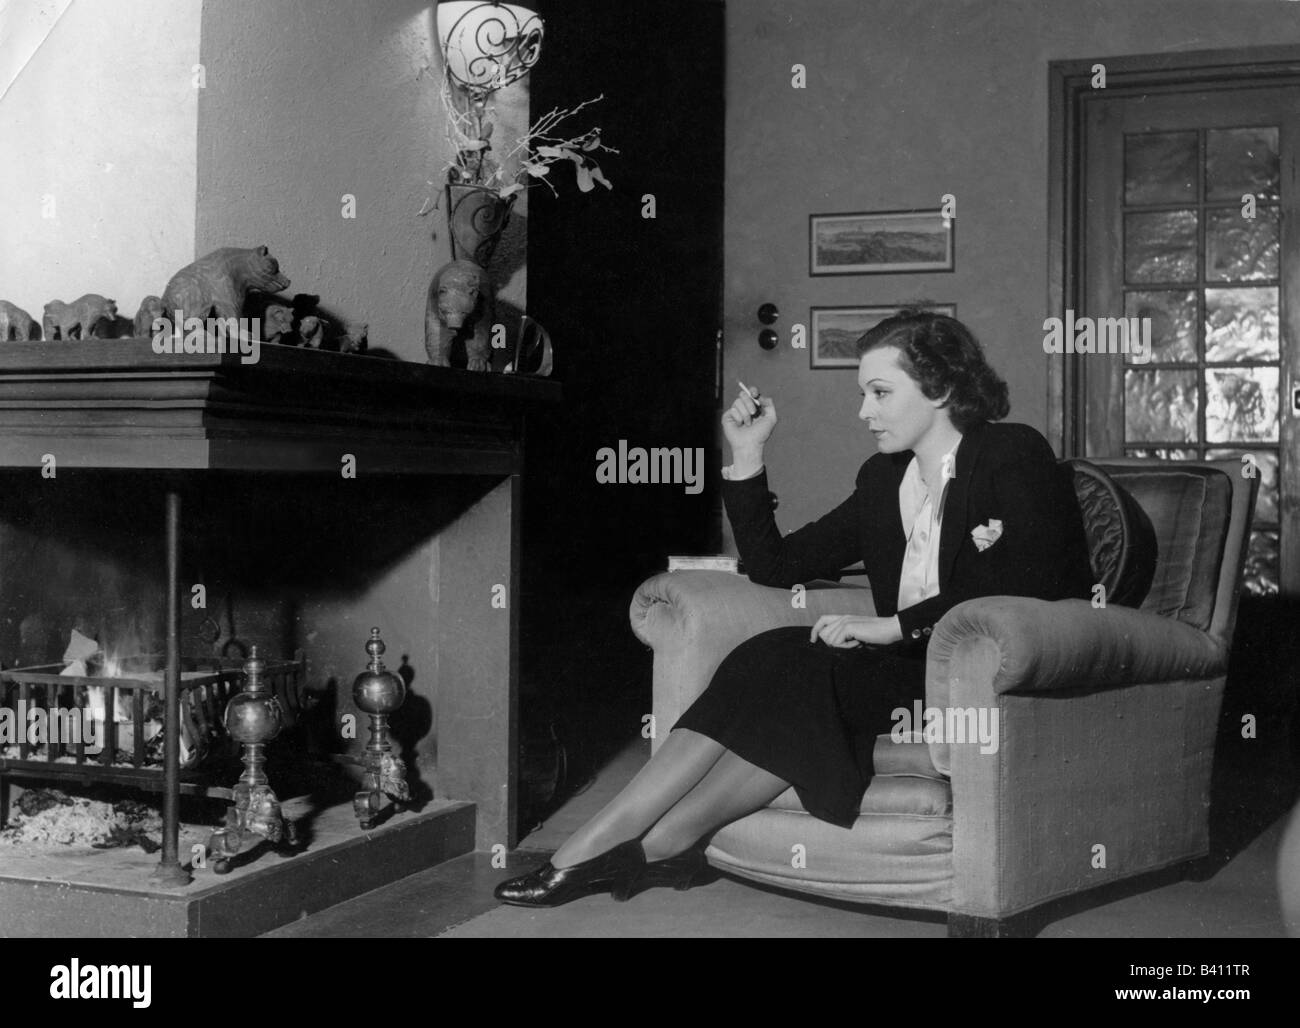 Leander, Zarah, 15.3.1907 - 23.6.1981, Swedish actress and singer, full length, in her house in Sweden, 1940s, Additional - Stock Image